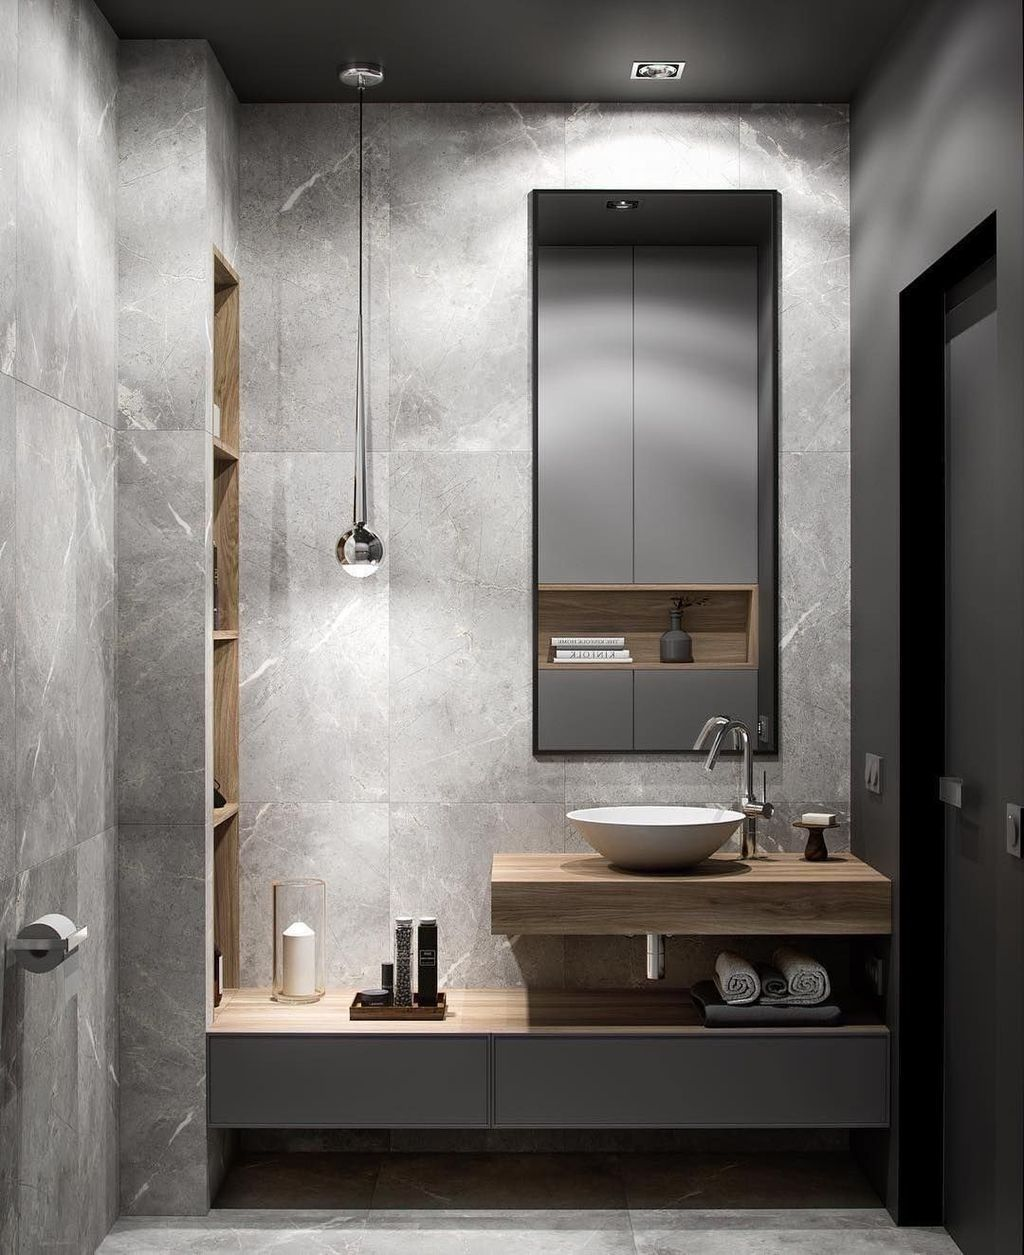 30 Casual Bathroom Designs Ideas With Addition Of Stone For Elegant Look In 2020 Bathroom Design Modern Bathroom Grey Bathrooms Designs